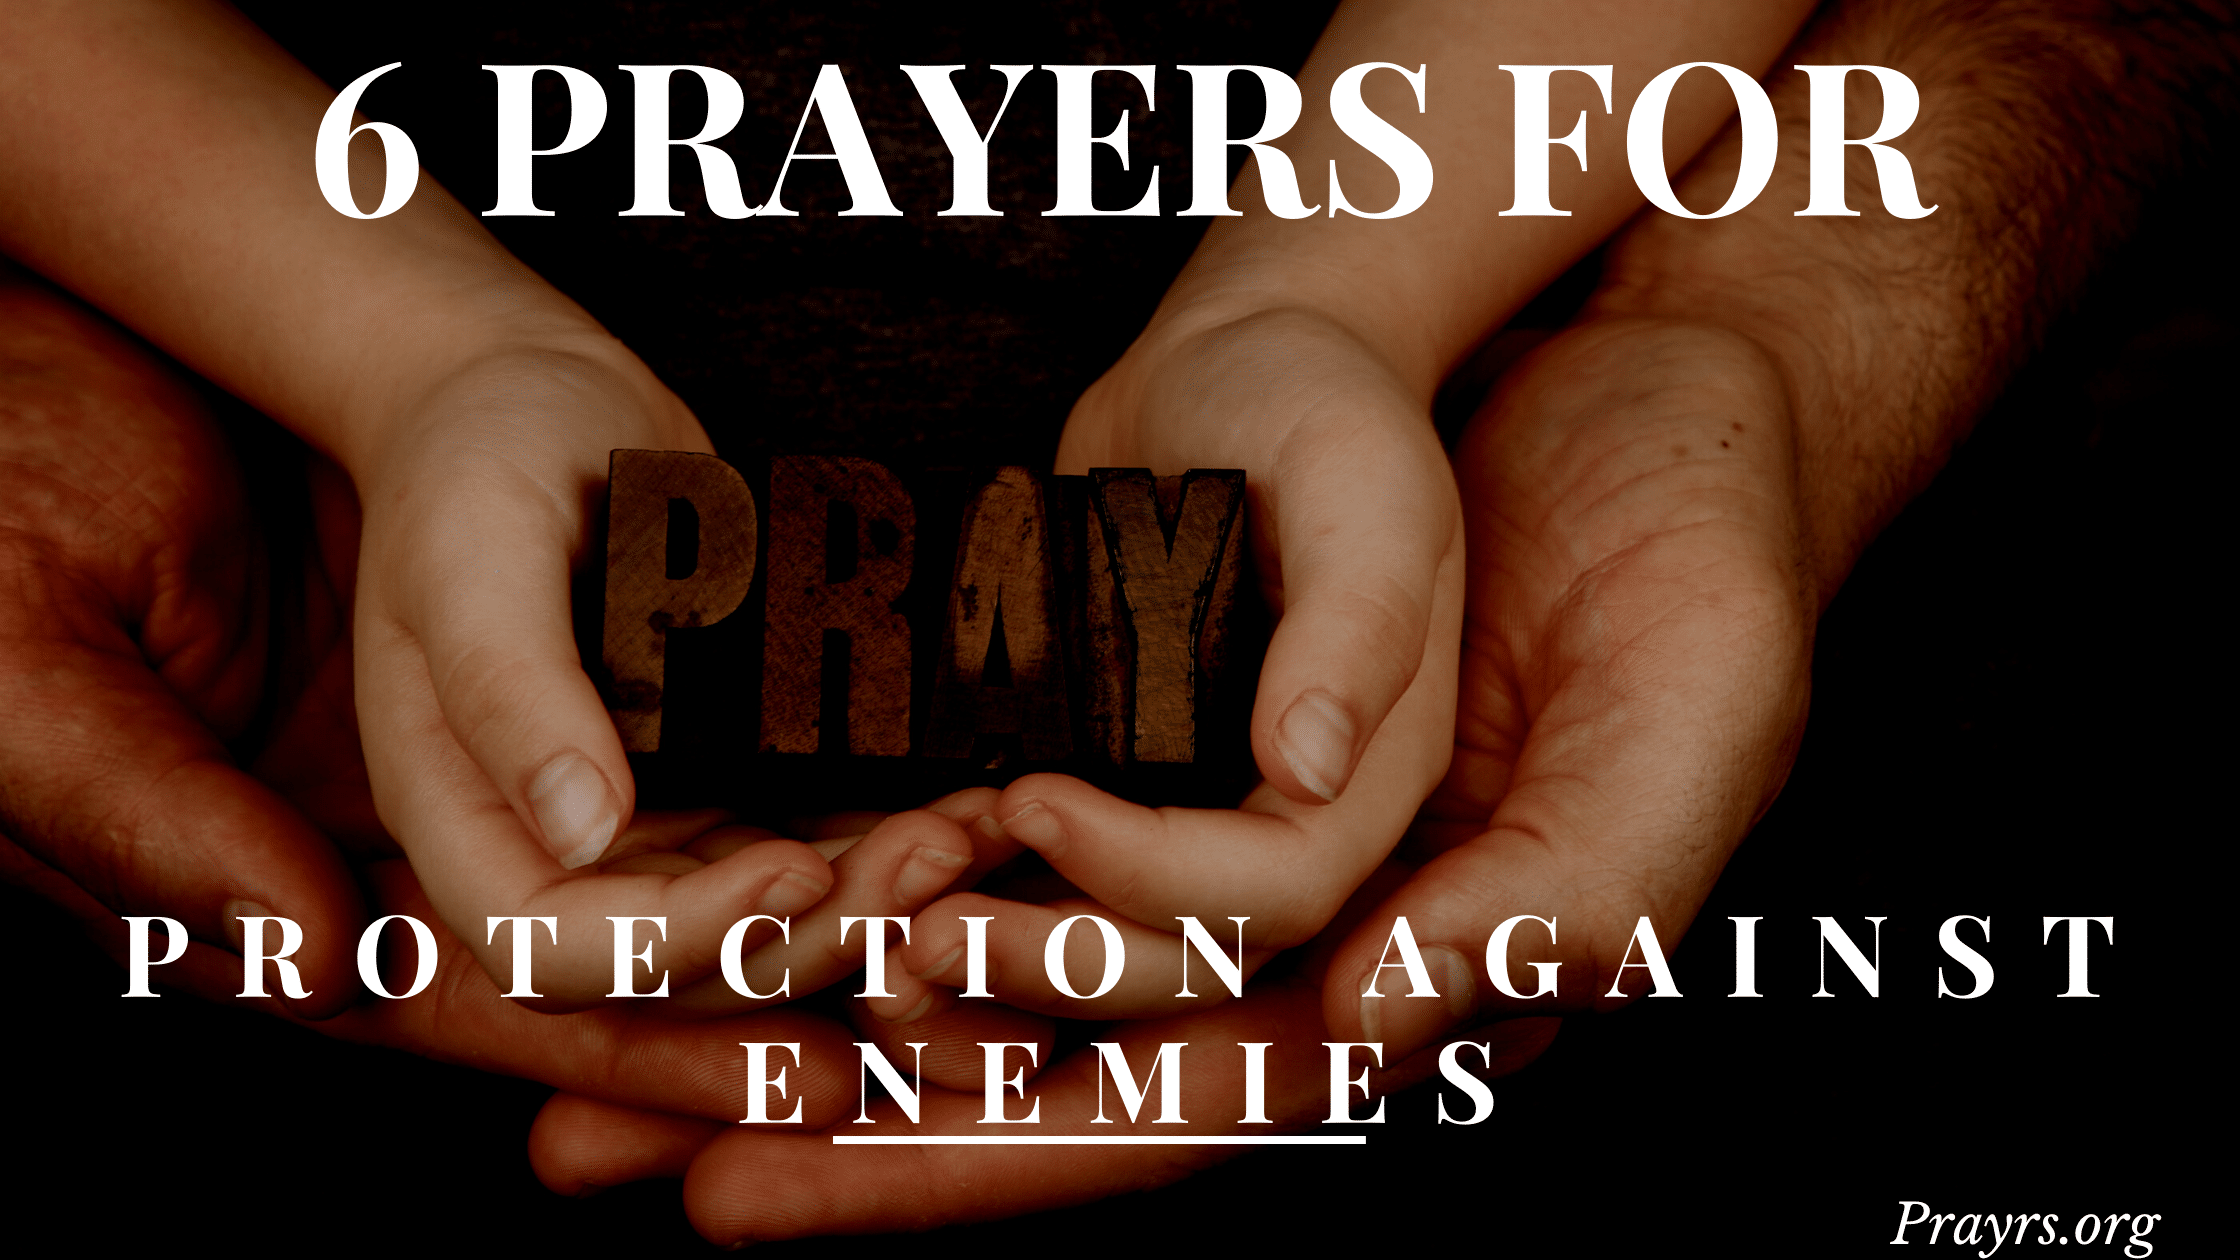 Prayers for Protection Against Enemies